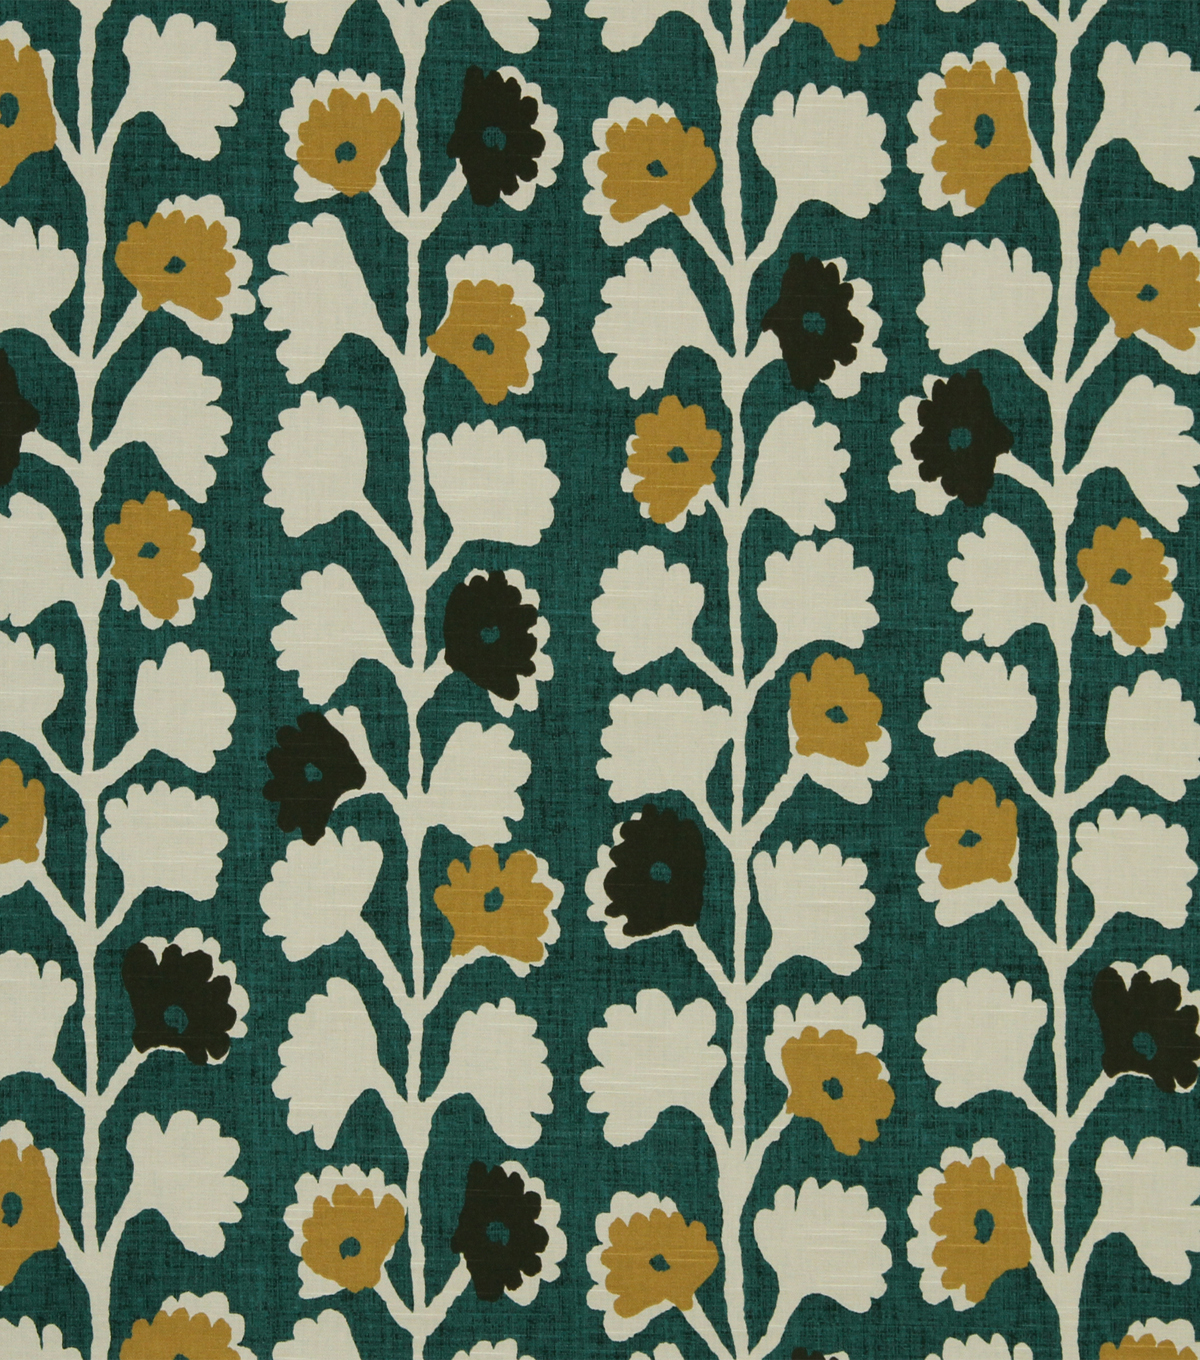 Home Decor 8\u0022x8\u0022 Fabric Swatch-Robert Allen Surreal Vines Jewel